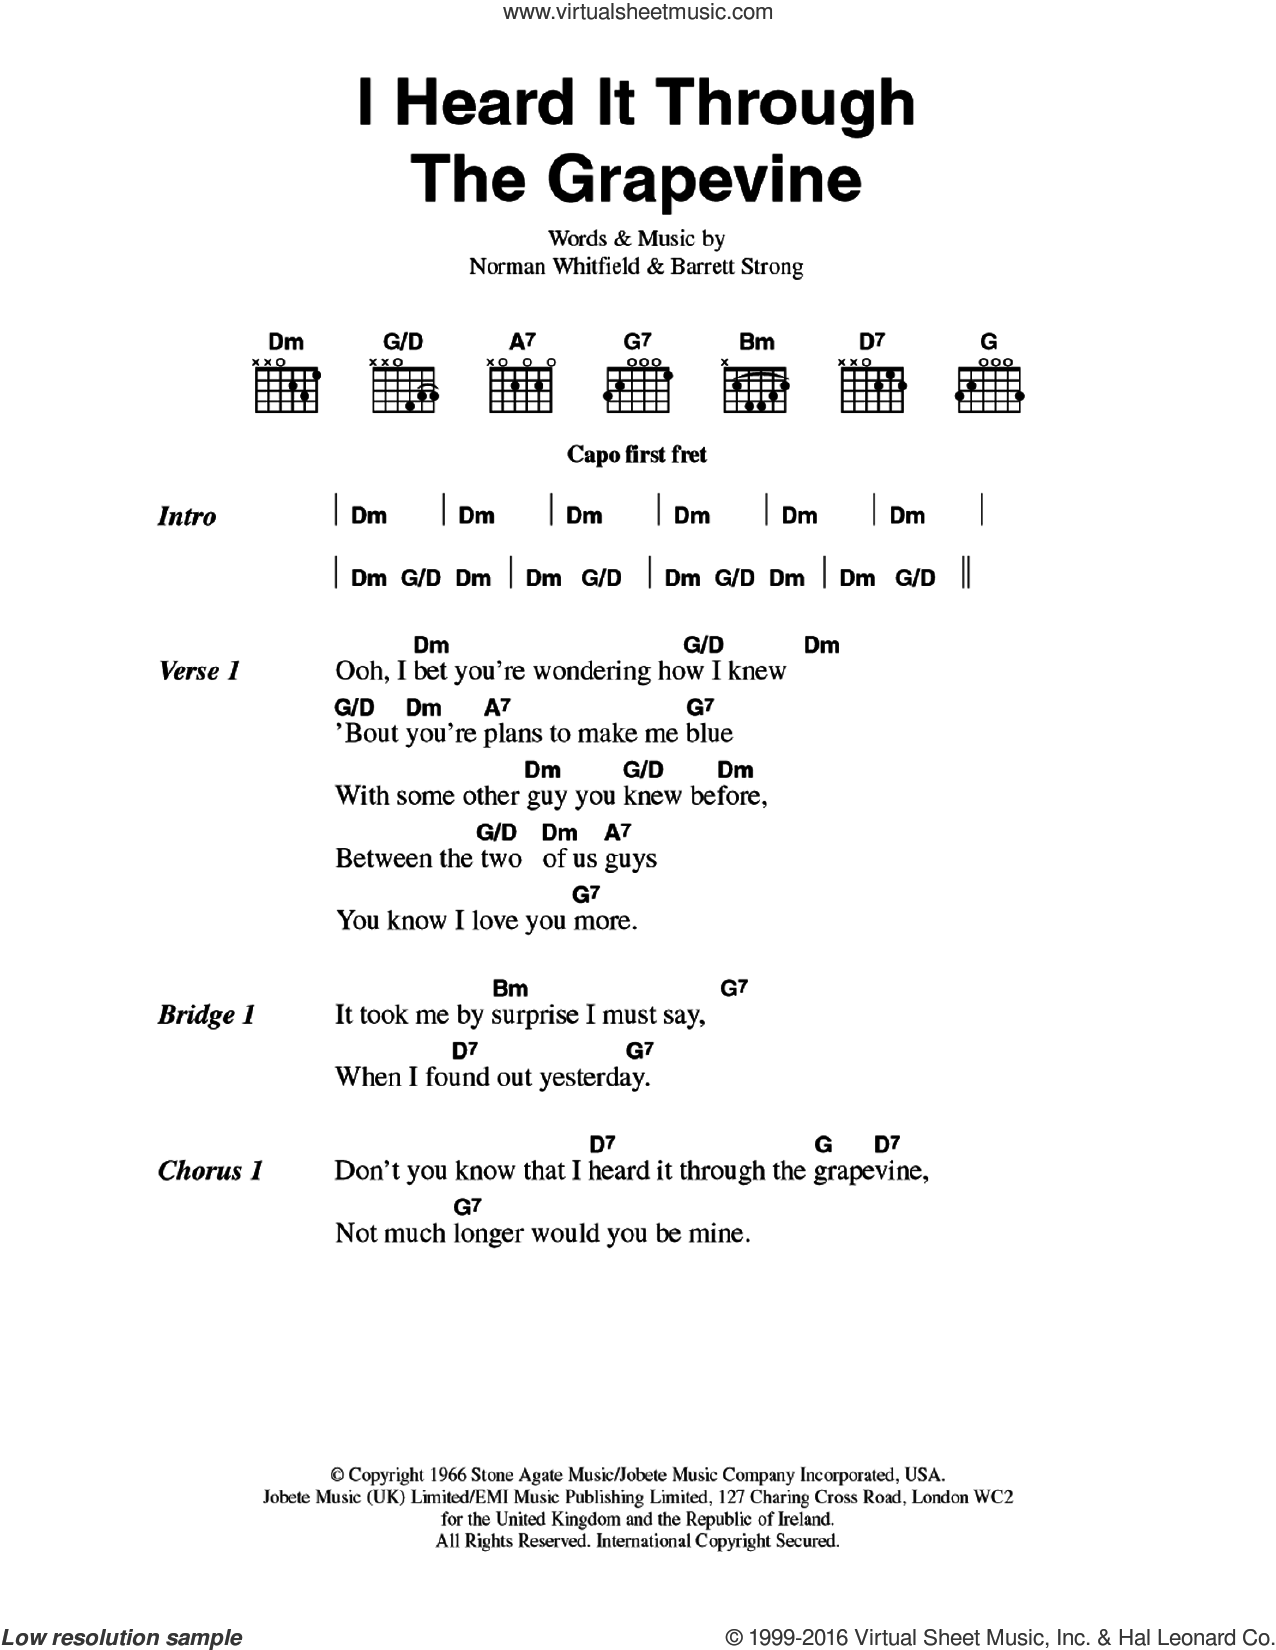 I Heard It Through The Grapevine sheet music for guitar (chords) by Marvin Gaye, Barrett Strong and Norman Whitfield, intermediate skill level